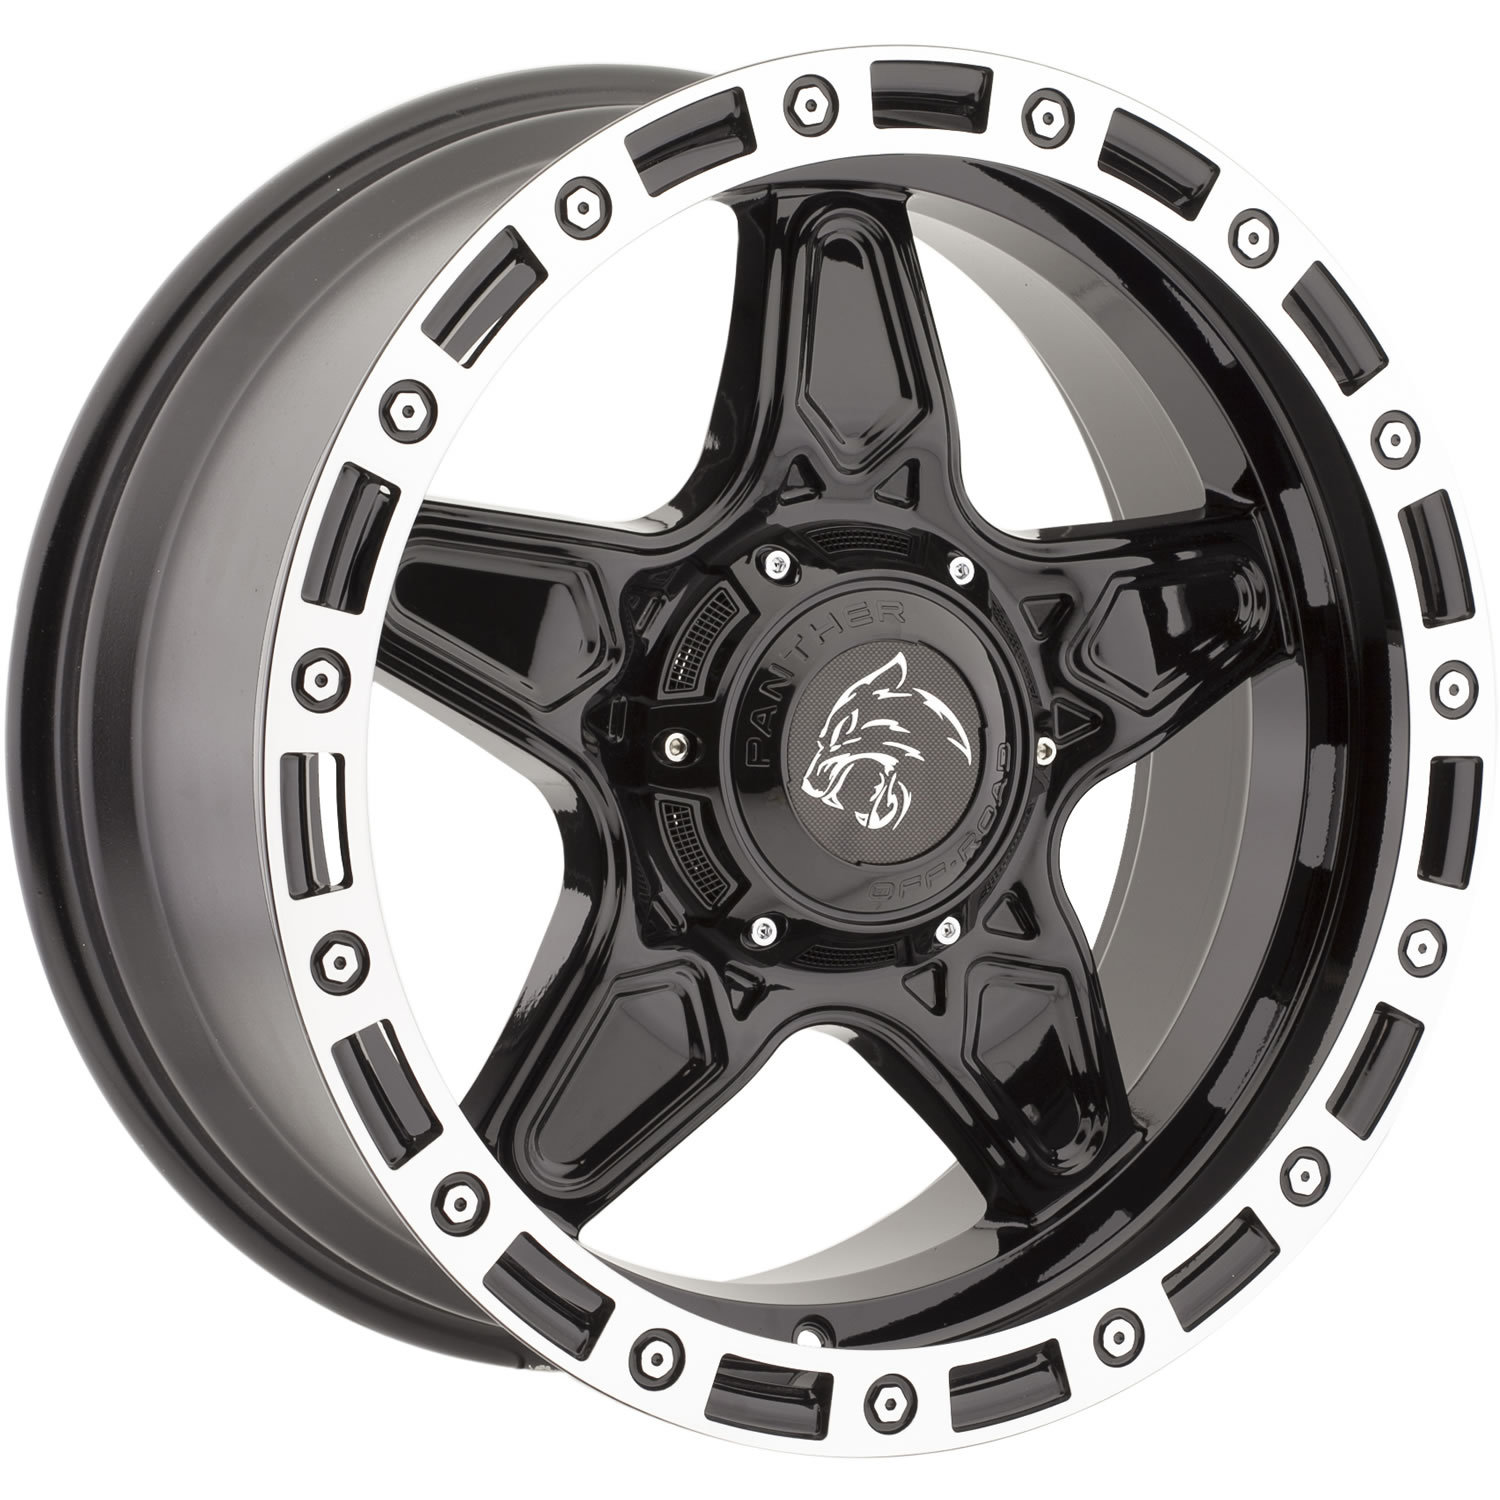 Panther Offroad 576 20x9 12 Custom Wheels